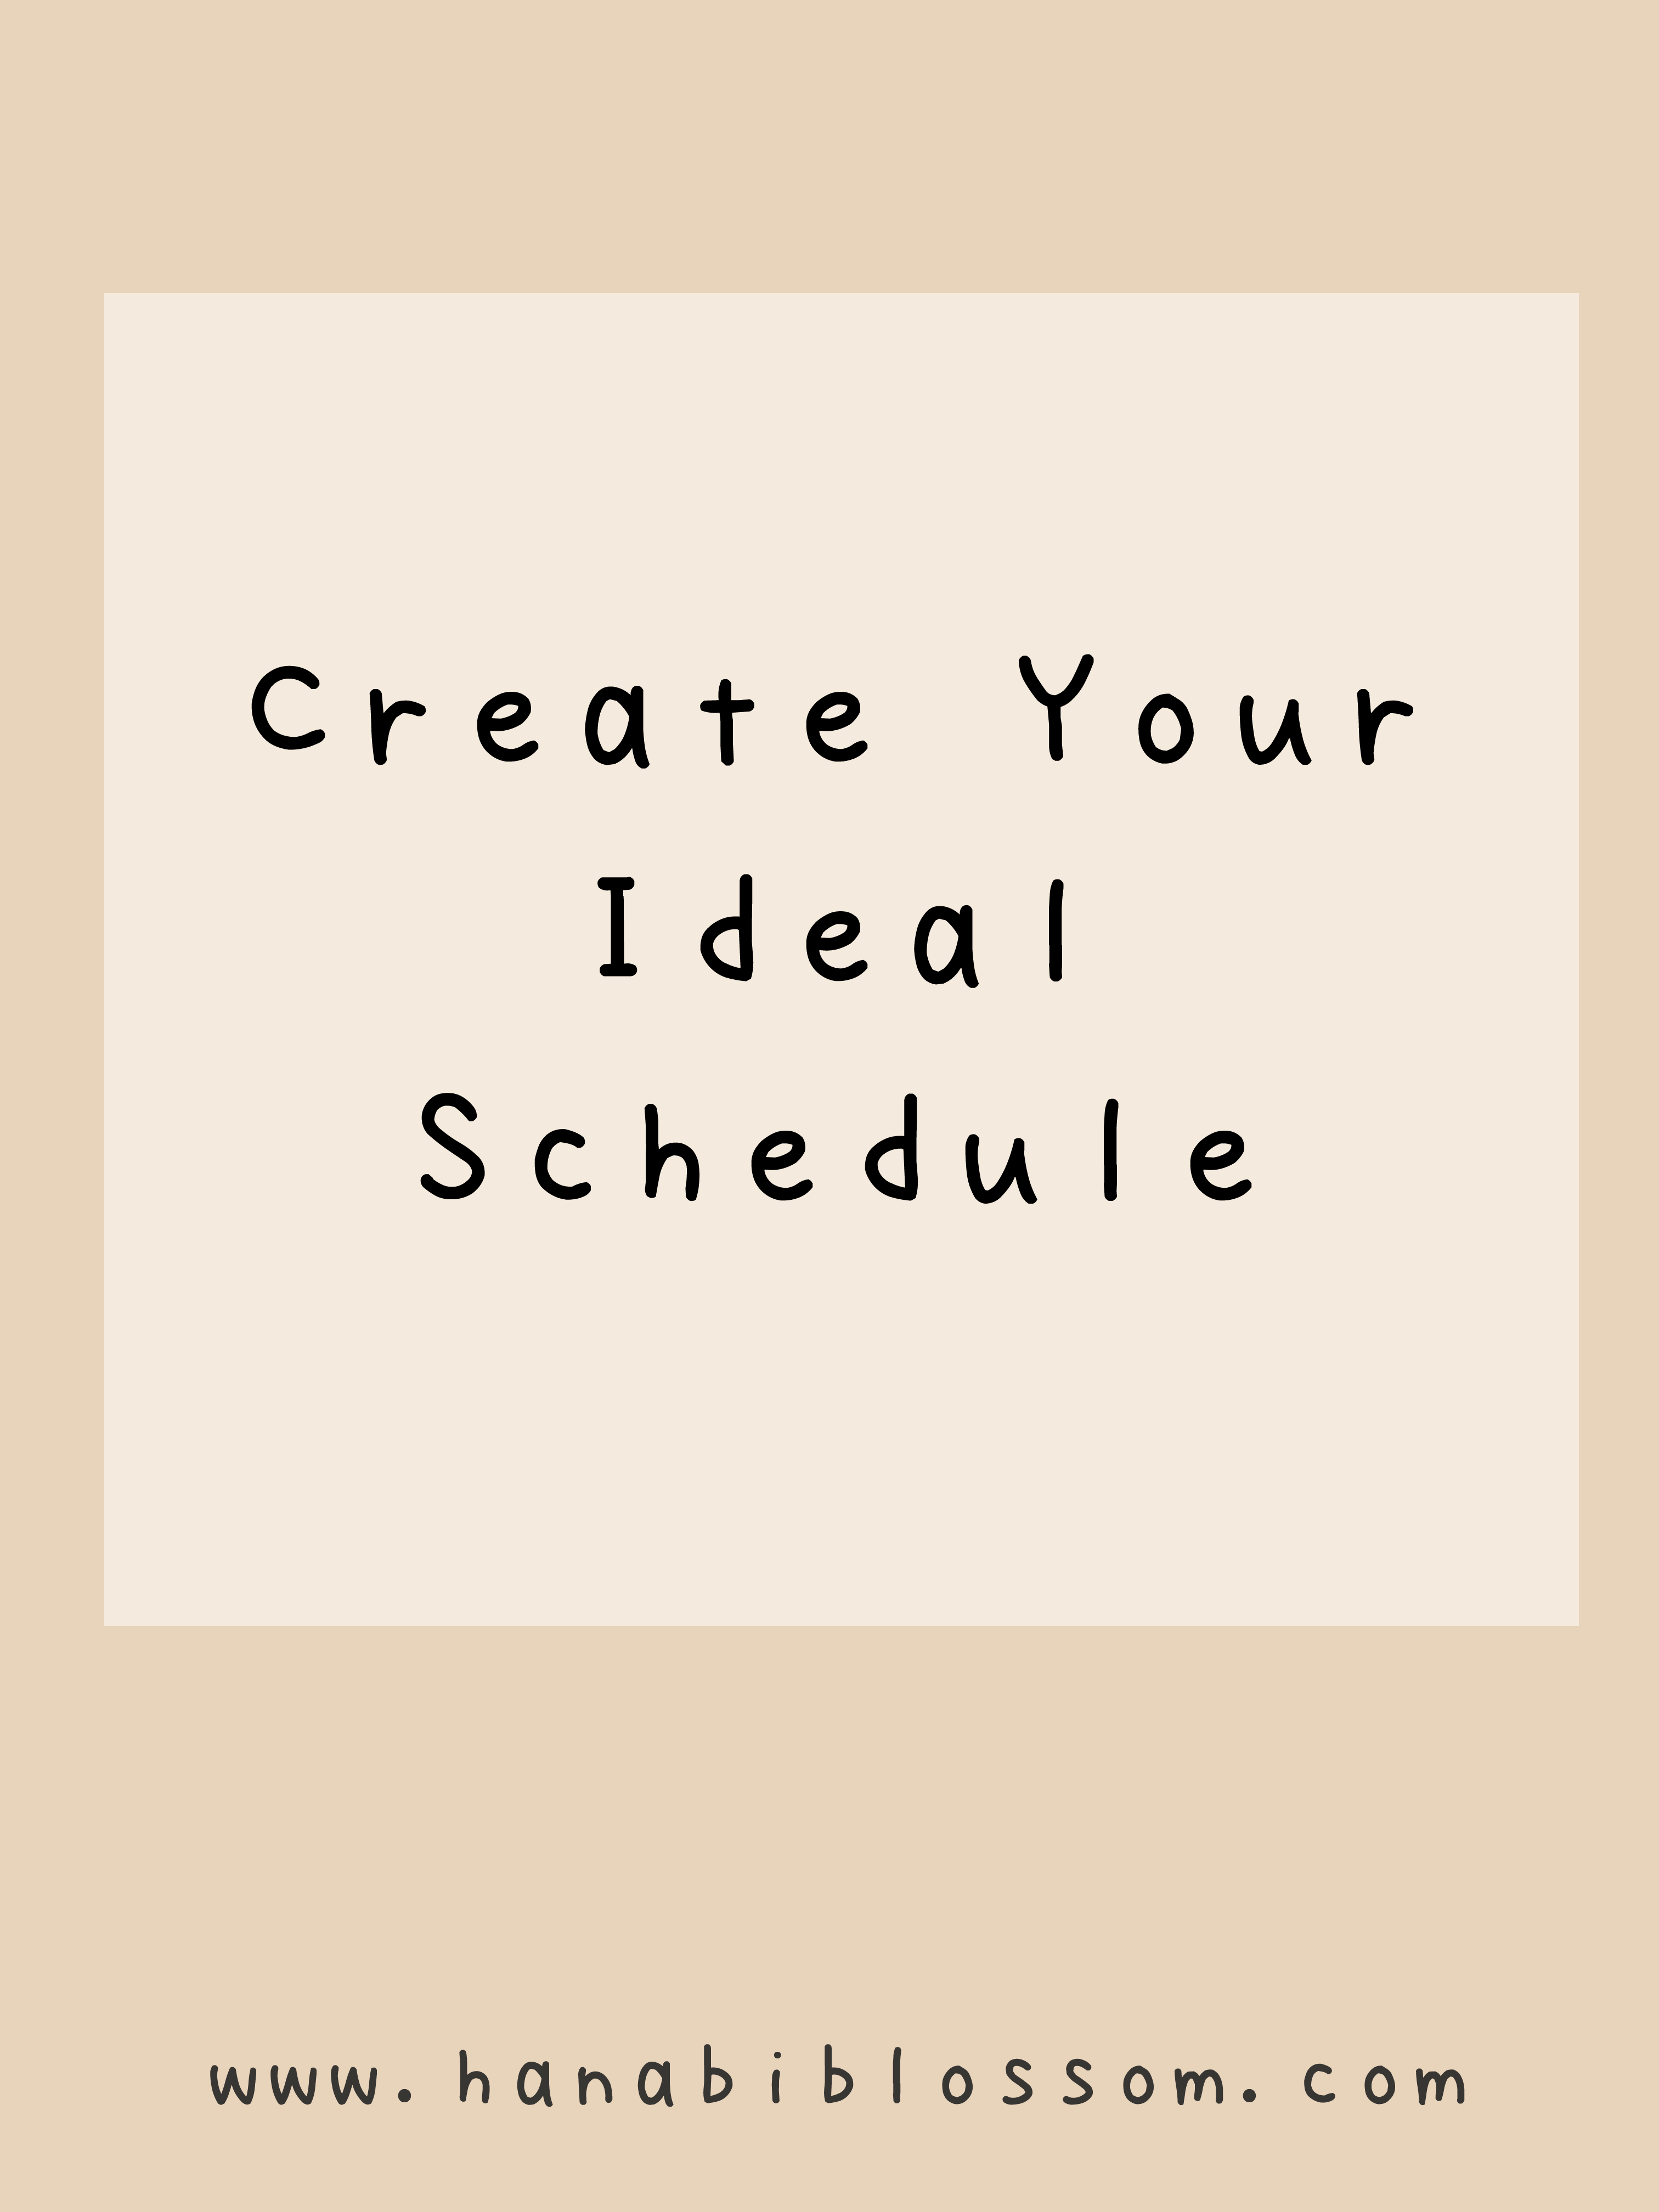 Guide To Creating Your Ideal Schedule